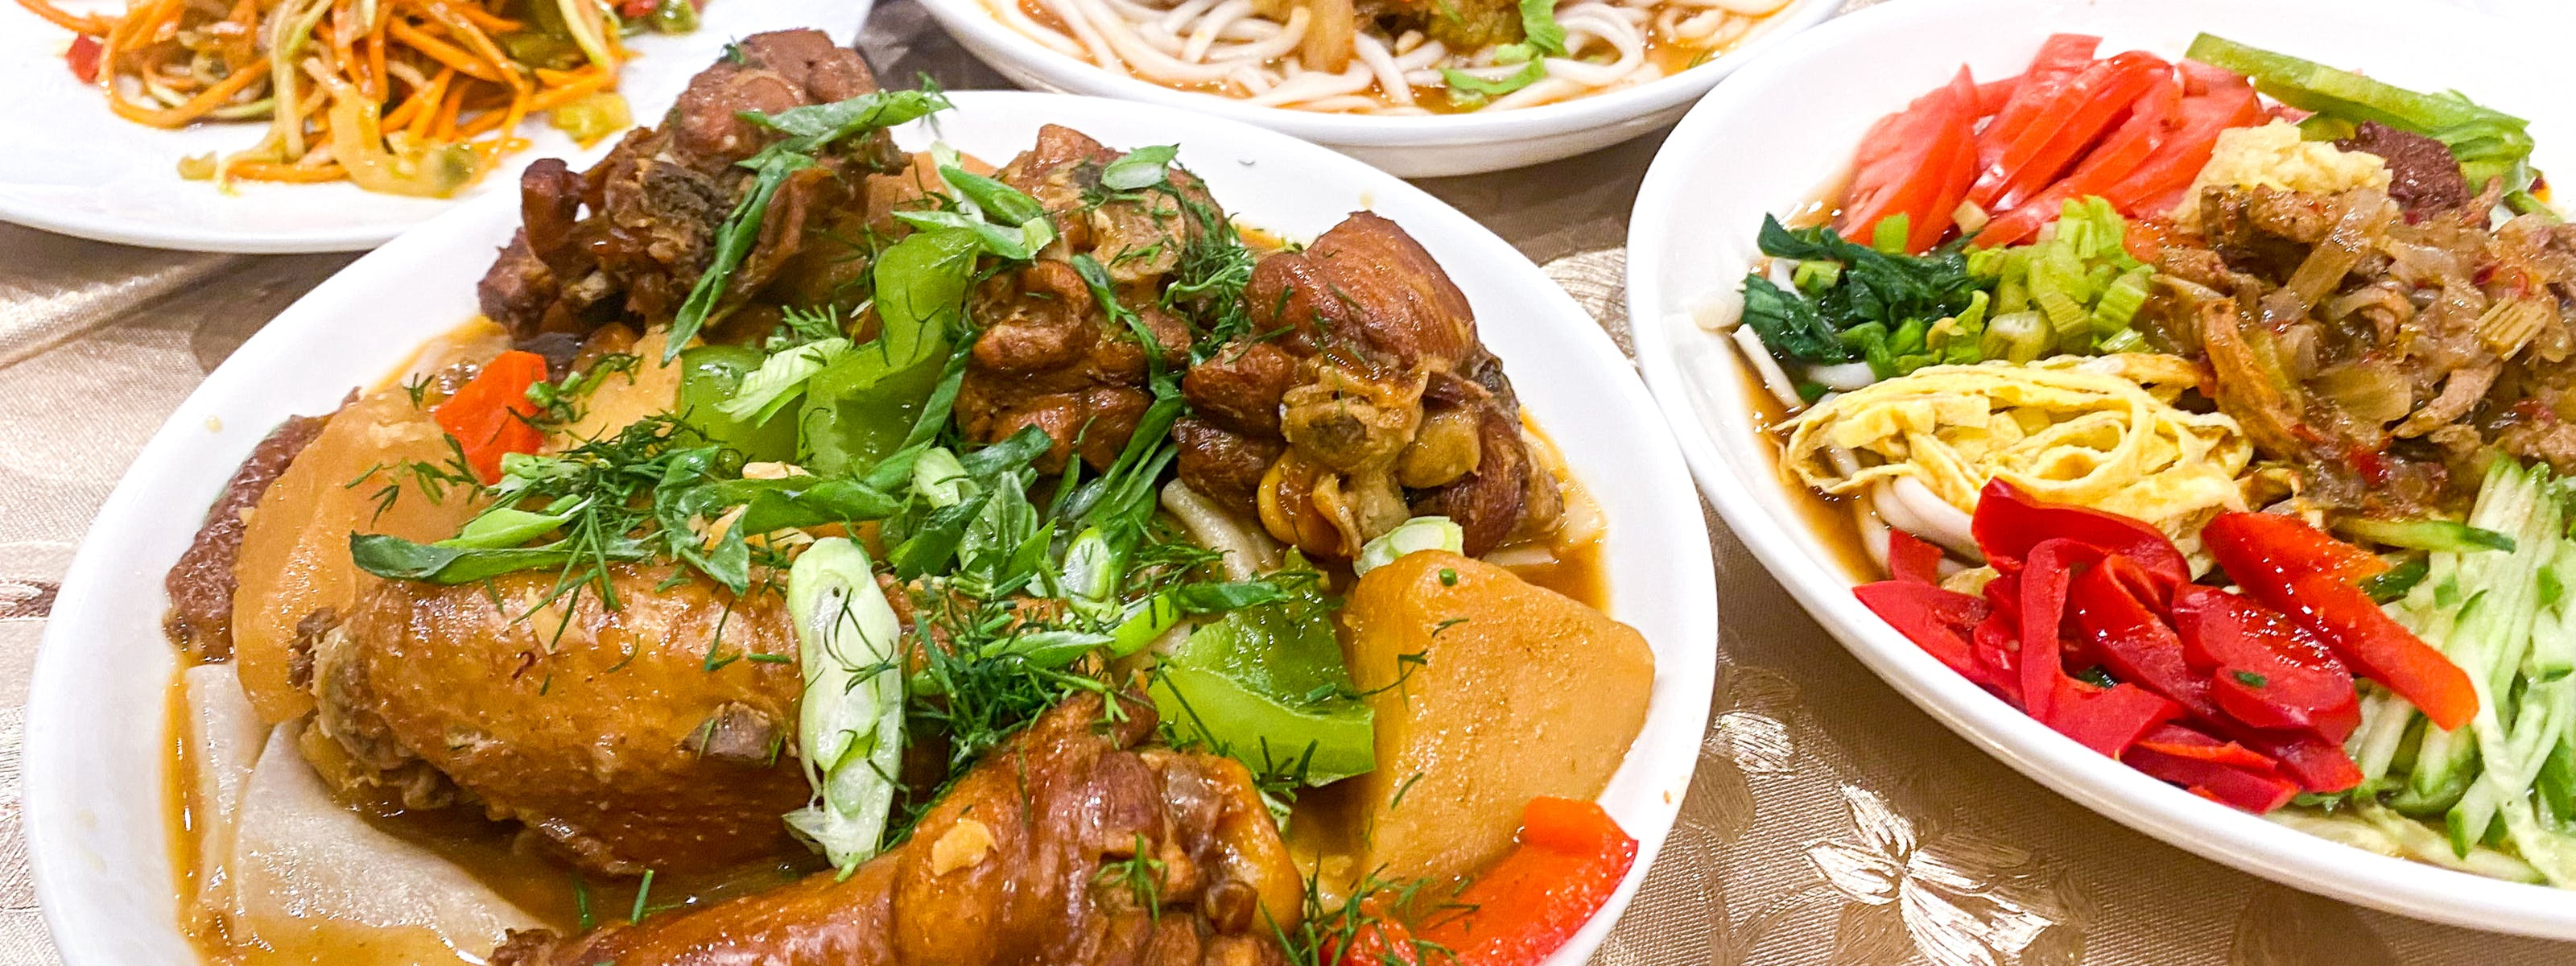 The Best Uyghur Restaurants In NYC - New York - The Infatuation